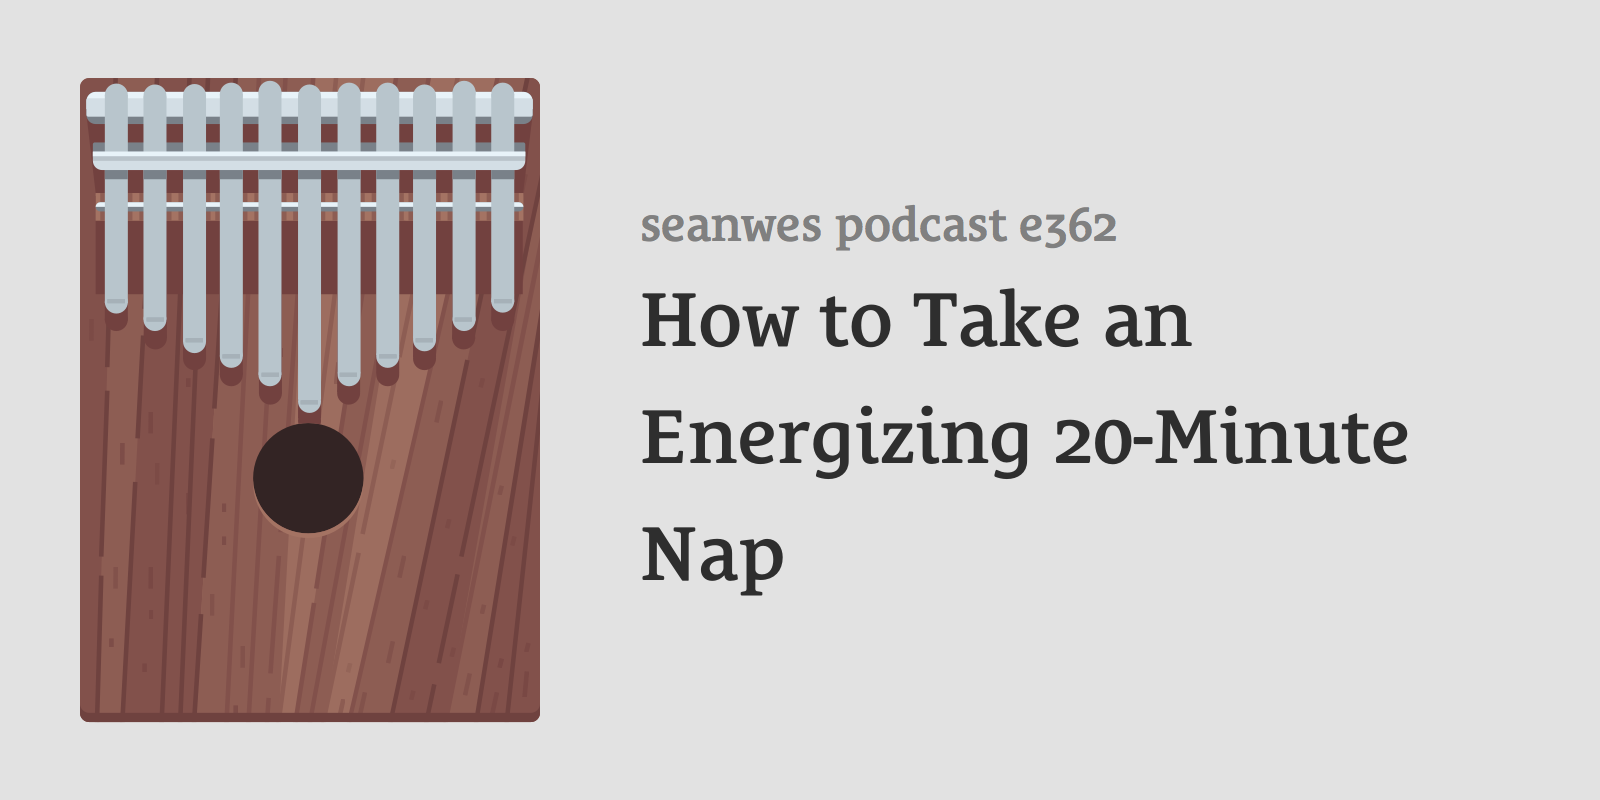 How to Take an Energizing 20-Minute Nap